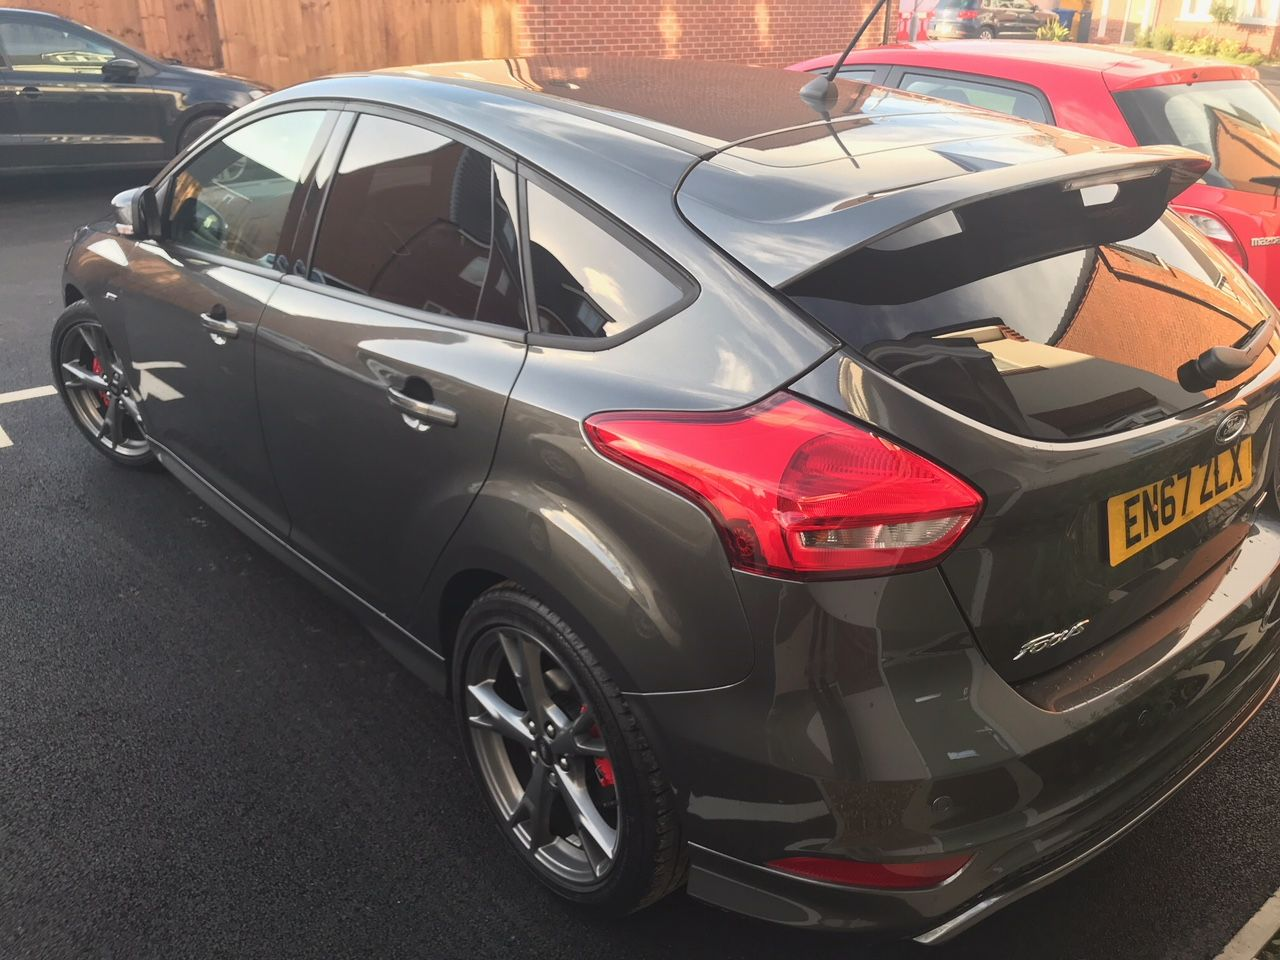 FORD FOCUS HATCHBACK 1.0 EcoBoost 140 ST-Line X 5dr Manual #cars #ford  #carlease